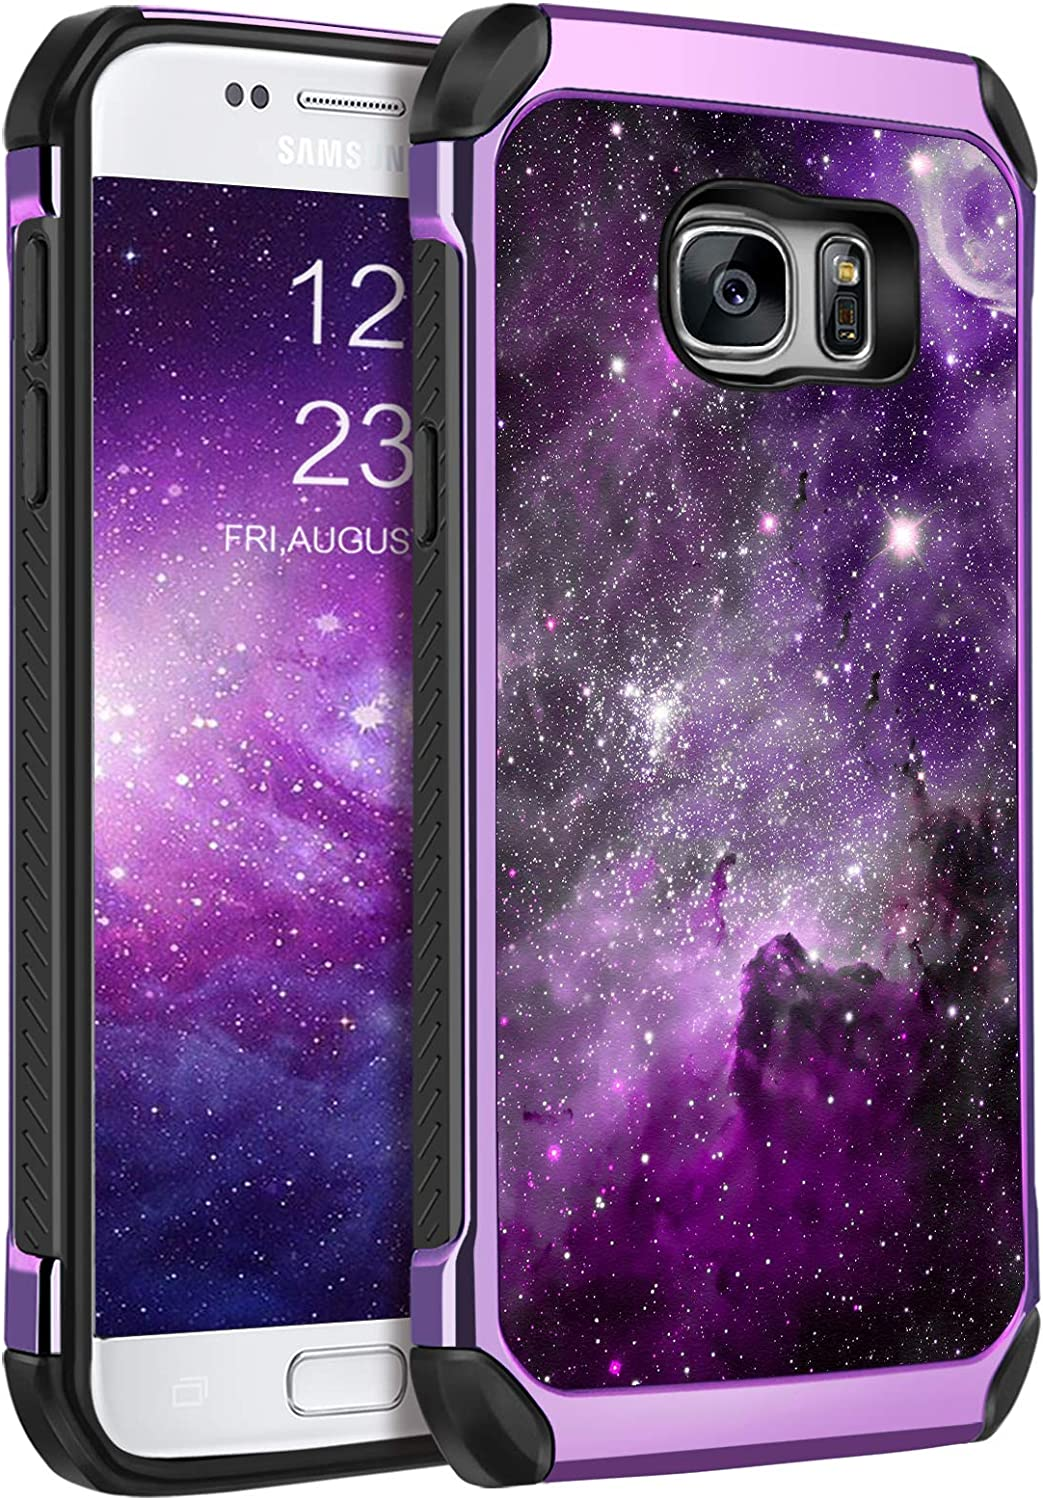 BENTOBEN Galaxy S7 Case, Phone Case Samsung S7, Slim Fit Glow in The Dark Shockproof Protective Dual Layer Hybrid Hard PC Soft TPU Bumper Drop Protection Non-Slip Girl Women Covers,Nebula/Space Design